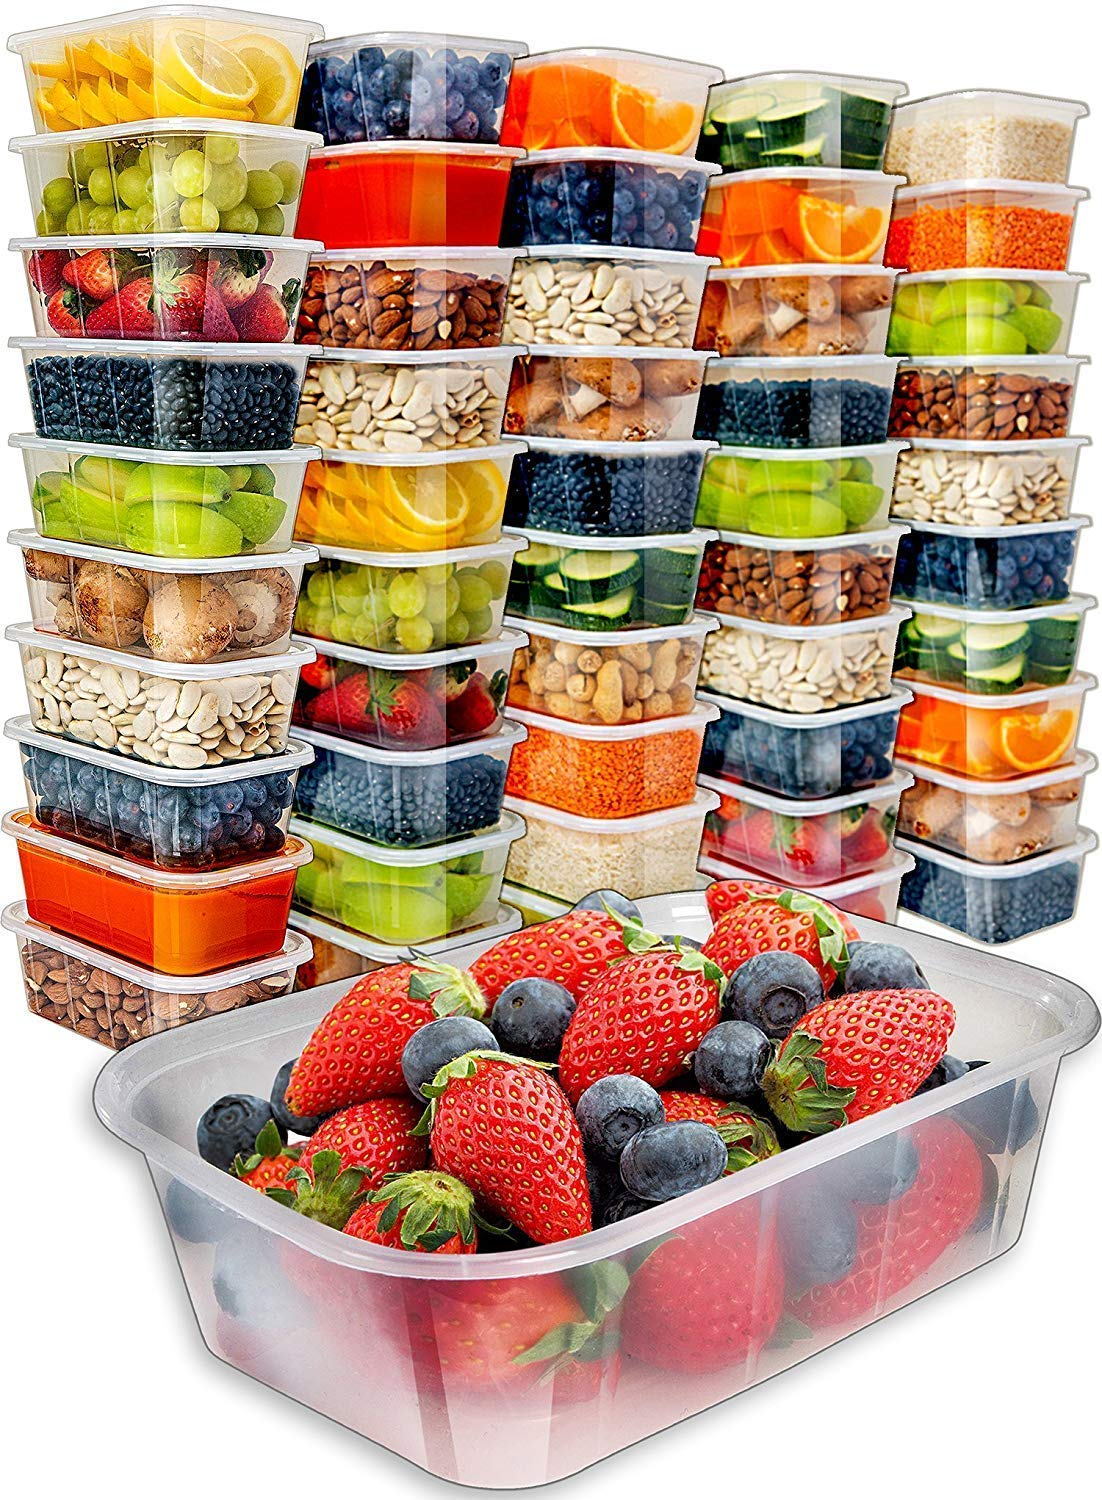 50 Food Storage Containers with Lids only $14.24!